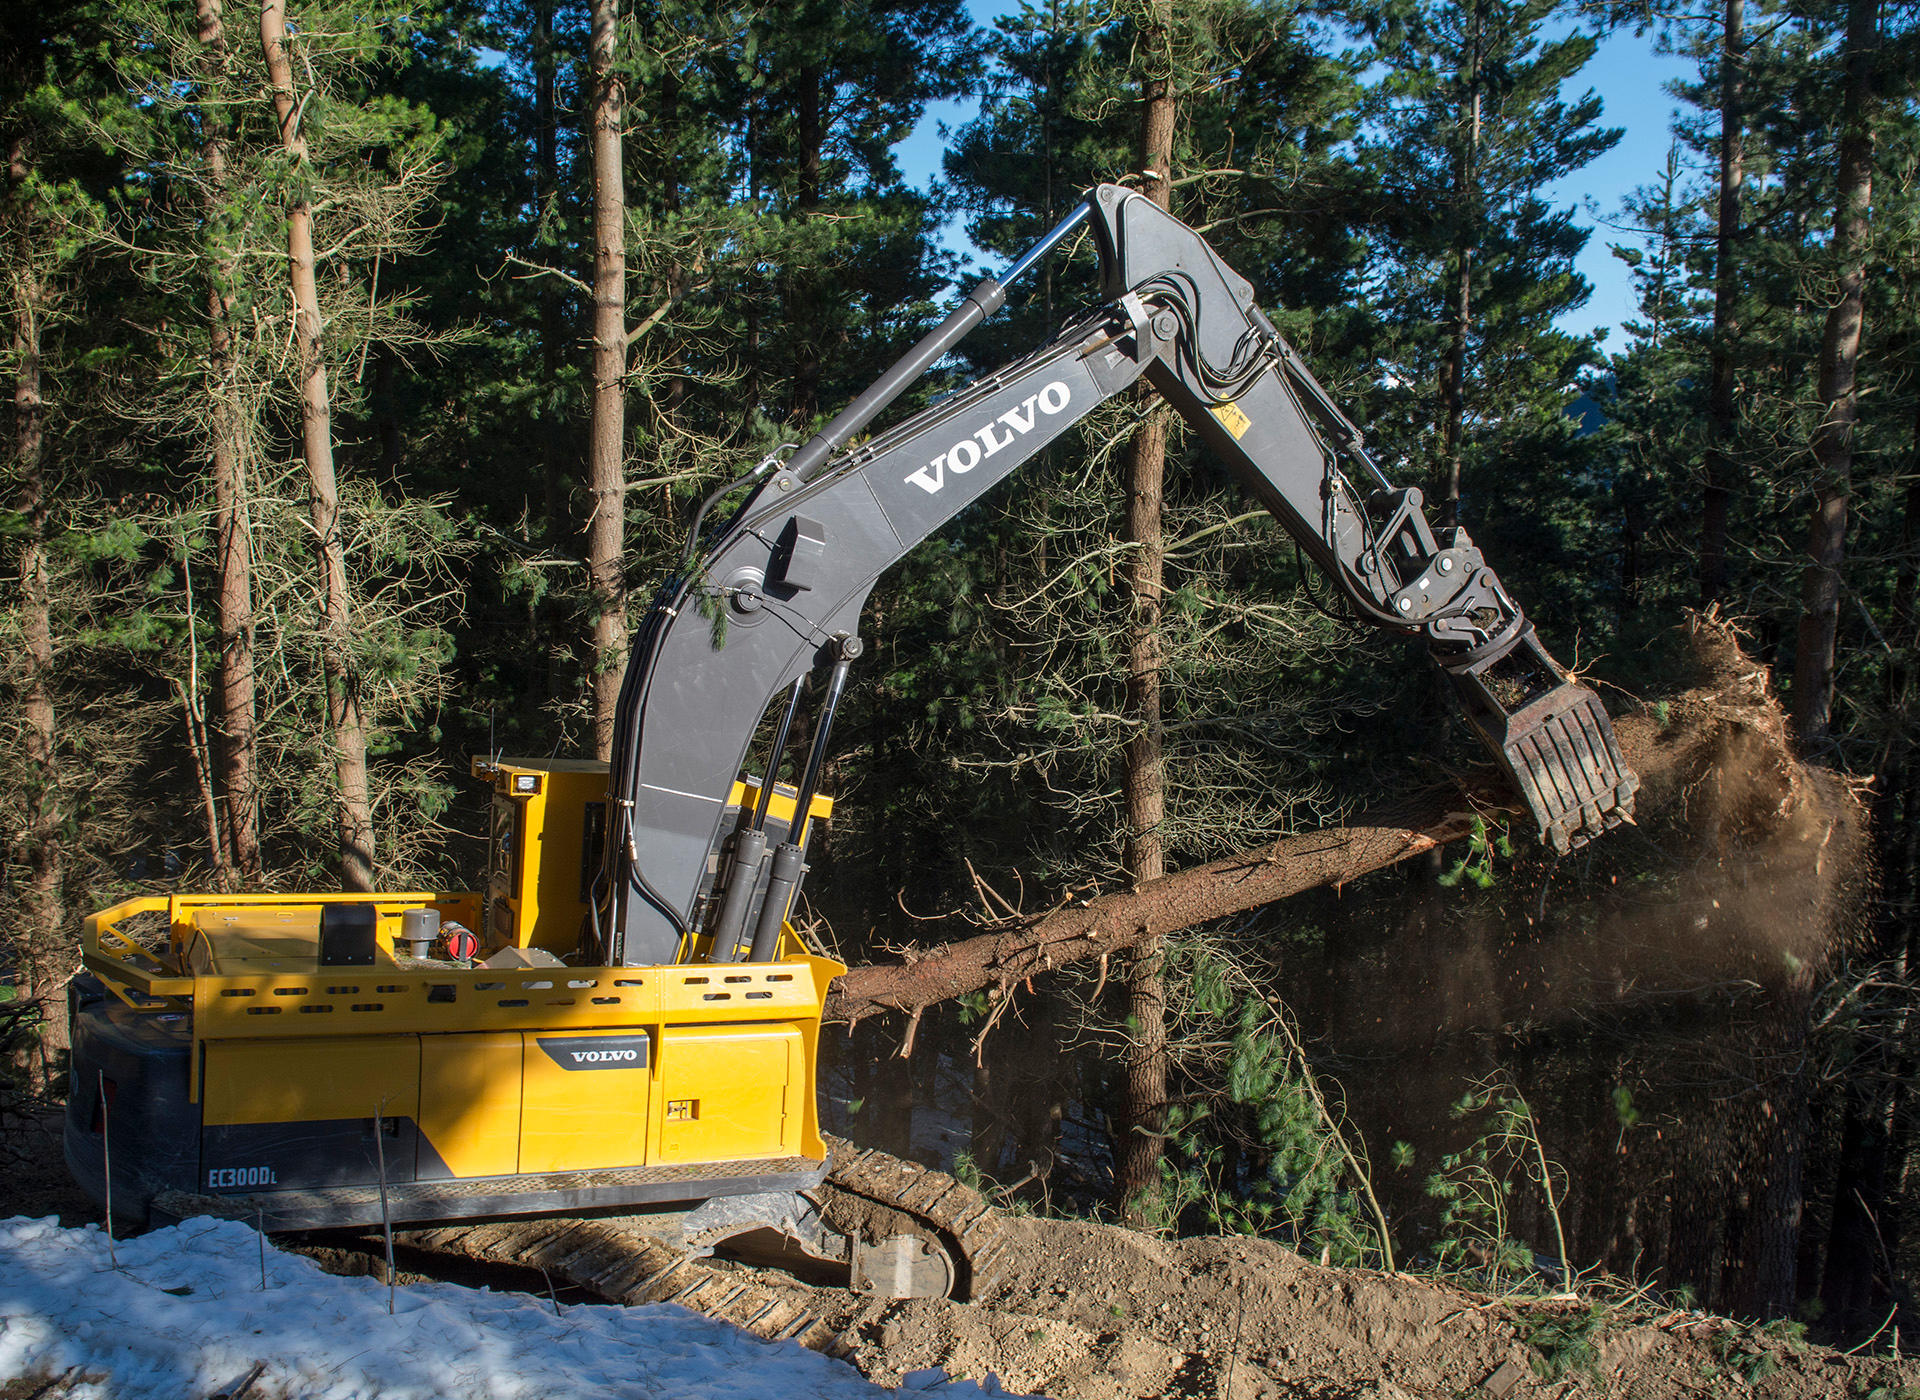 With a factory-fit forestry cab, heavy-duty undercarriage and reinforced boom arm, the Volvo EC300DL is ready to work.